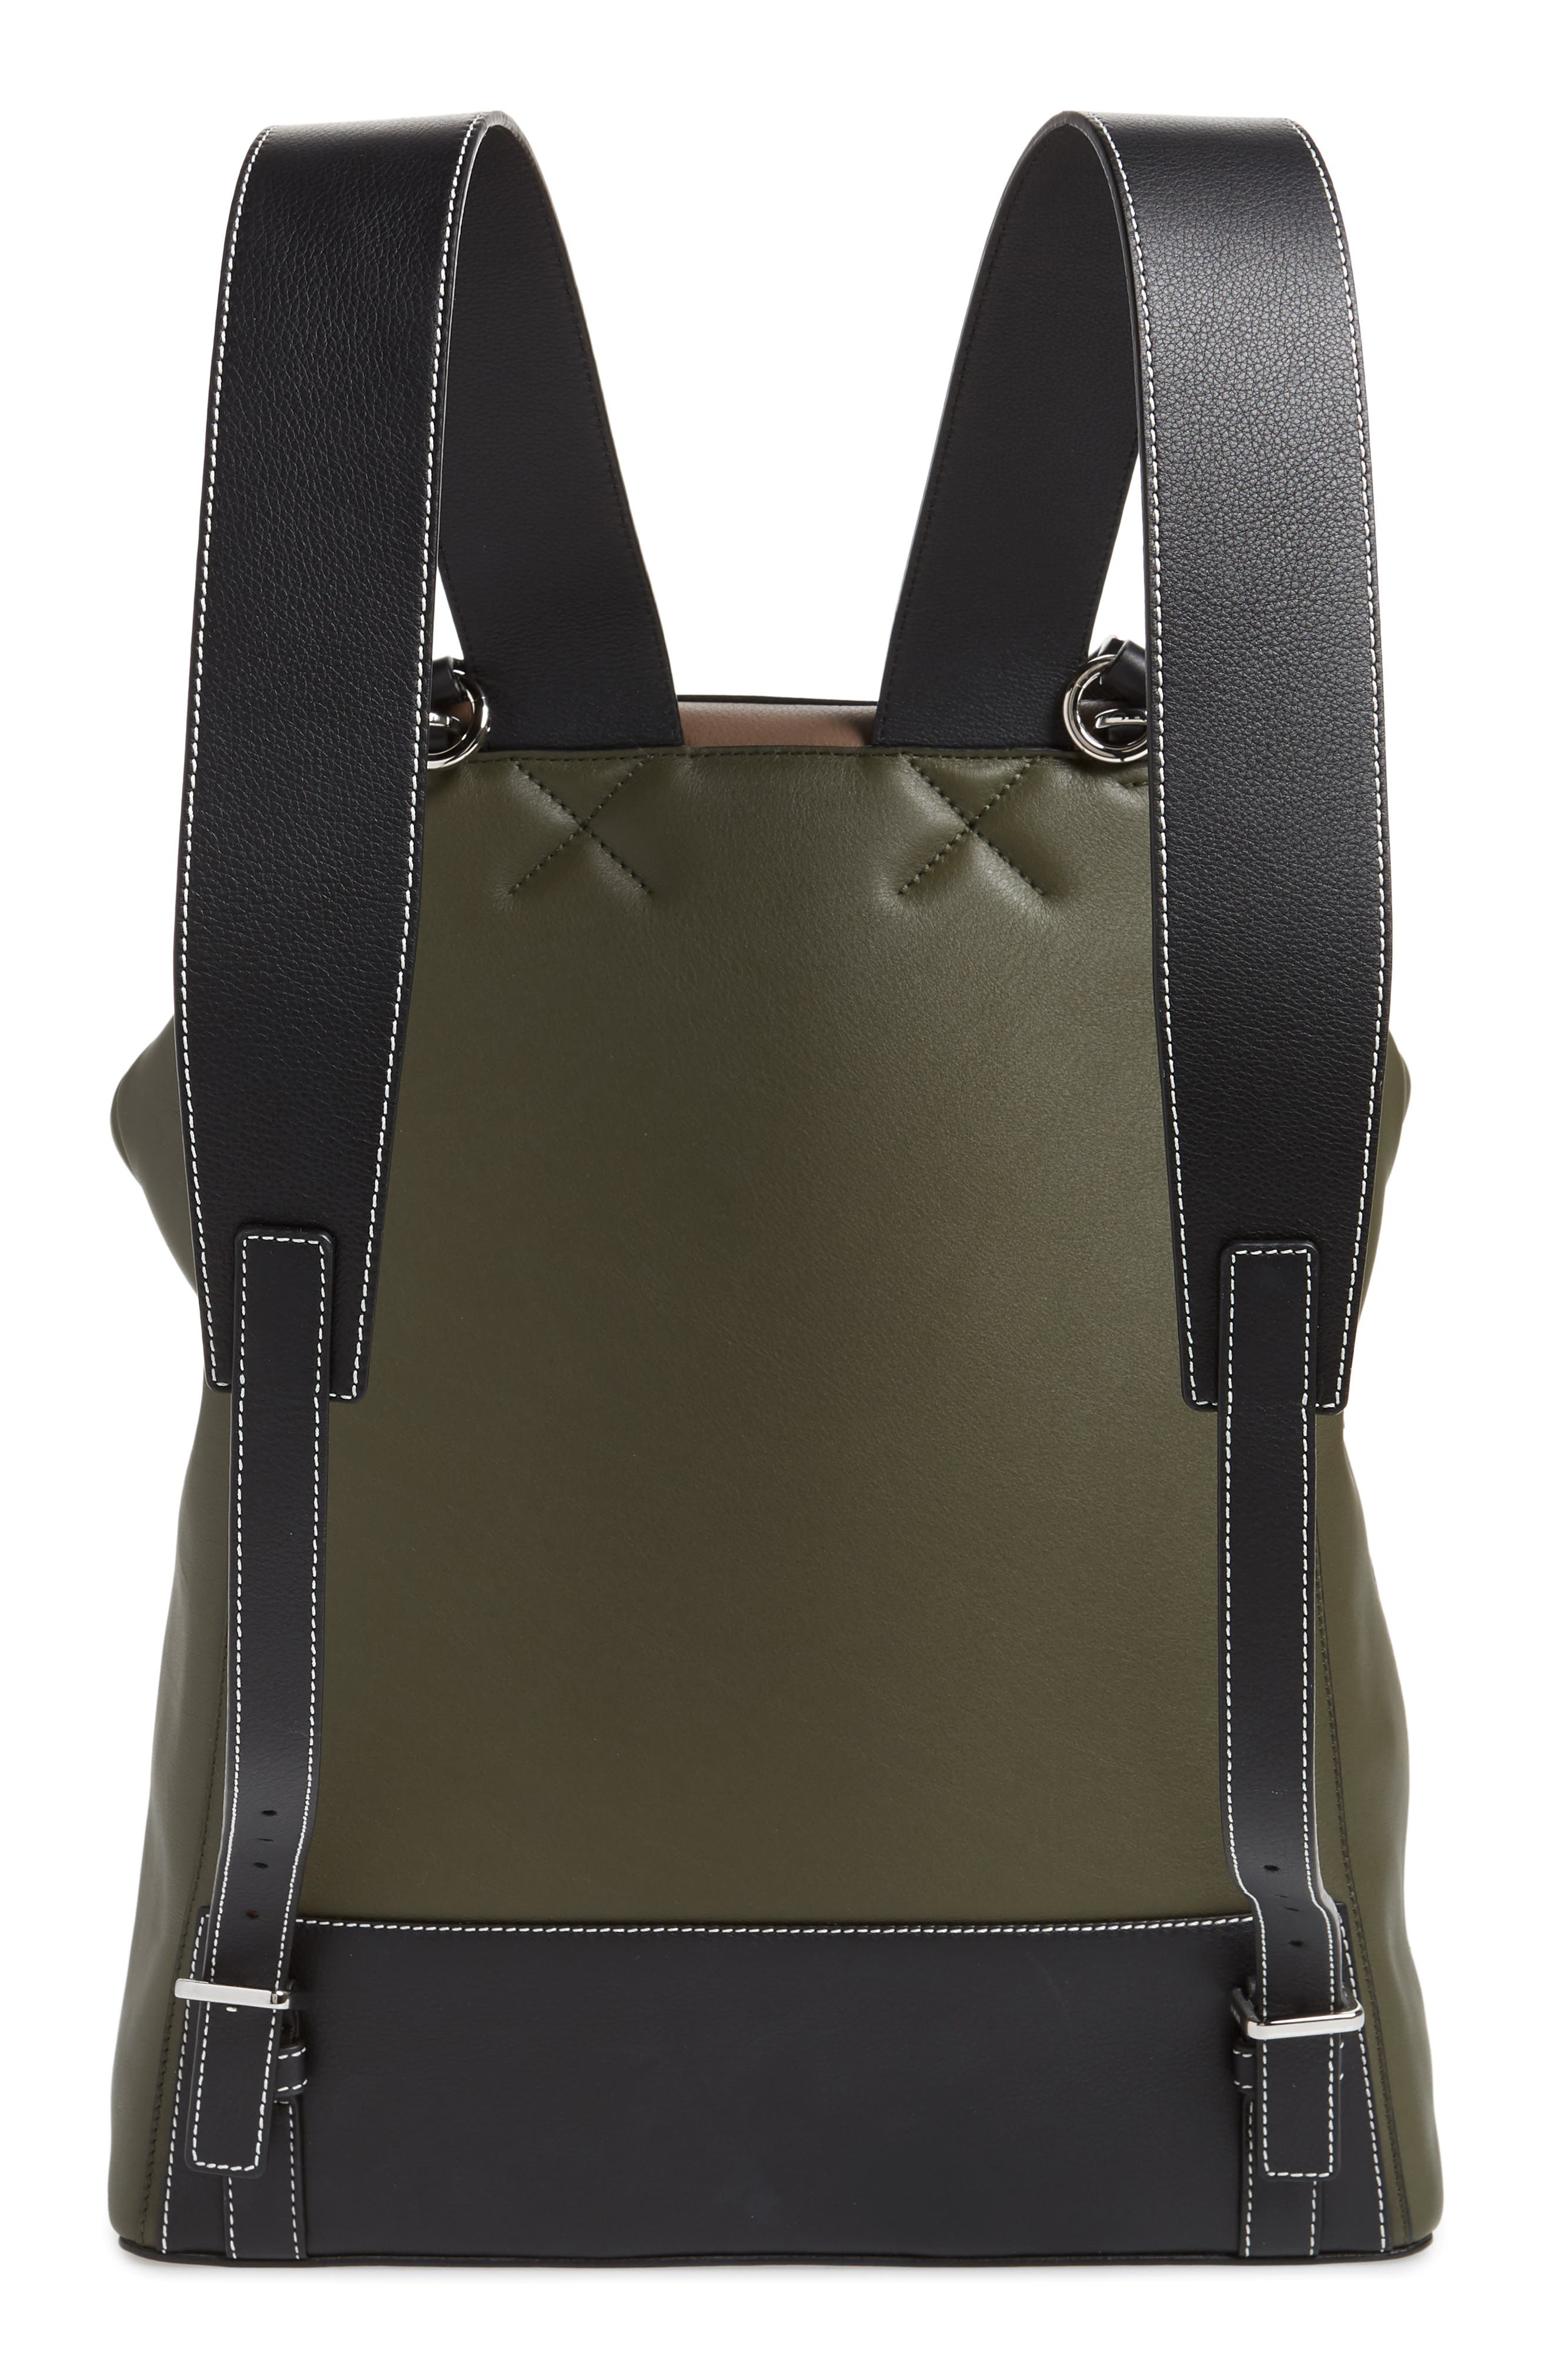 LOEWE, Goya Backpack, Alternate thumbnail 3, color, DARK TAUPE/ GREEN MILITARY